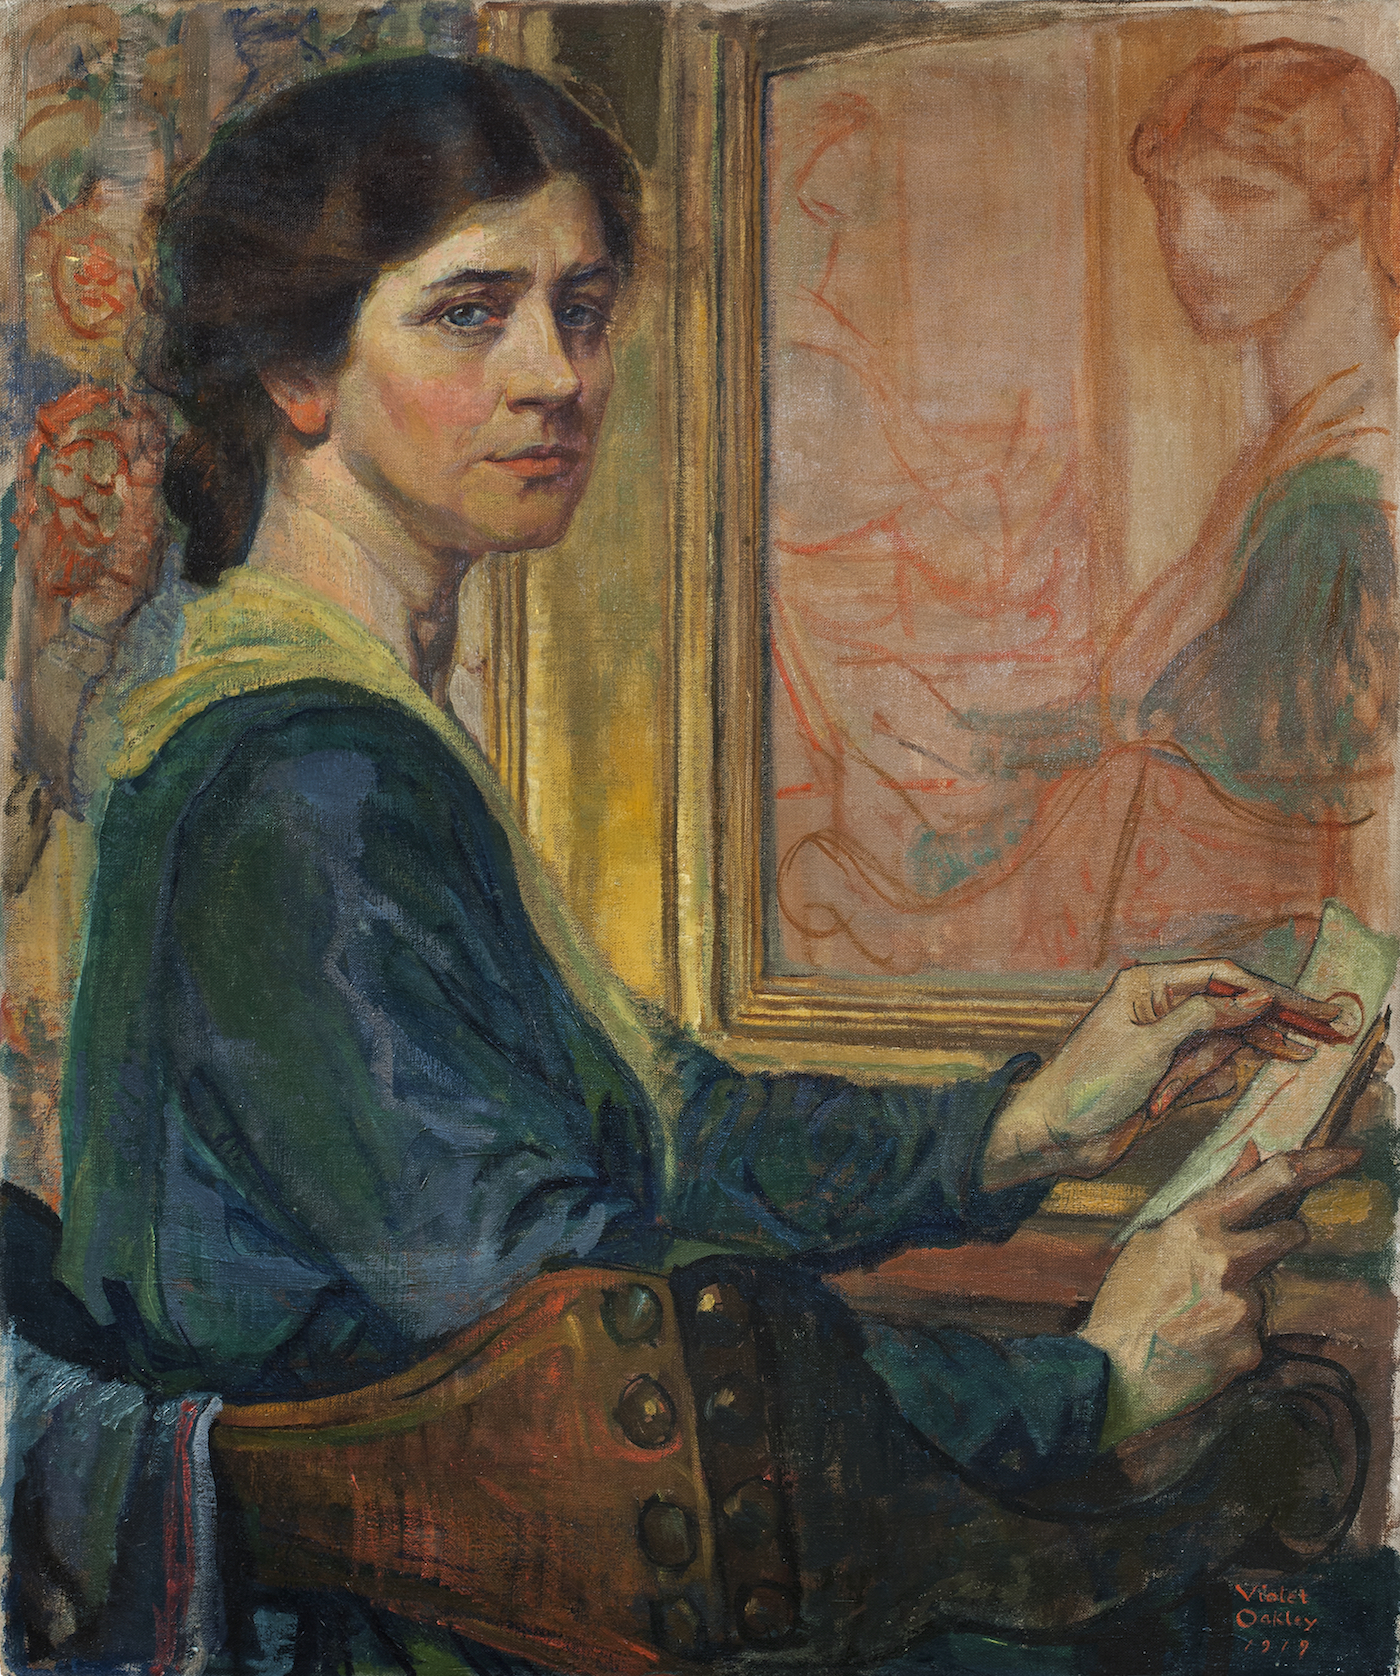 Violet Oakley, 1874 - 1961, Self-Portrait, 1919, oil on canvas, mounted on panel, unframed: 30 × 25 in., ANA diploma presentation, January 20, 1920, National Academy Museum, New York. Photo by Glenn Castellano (944-P)